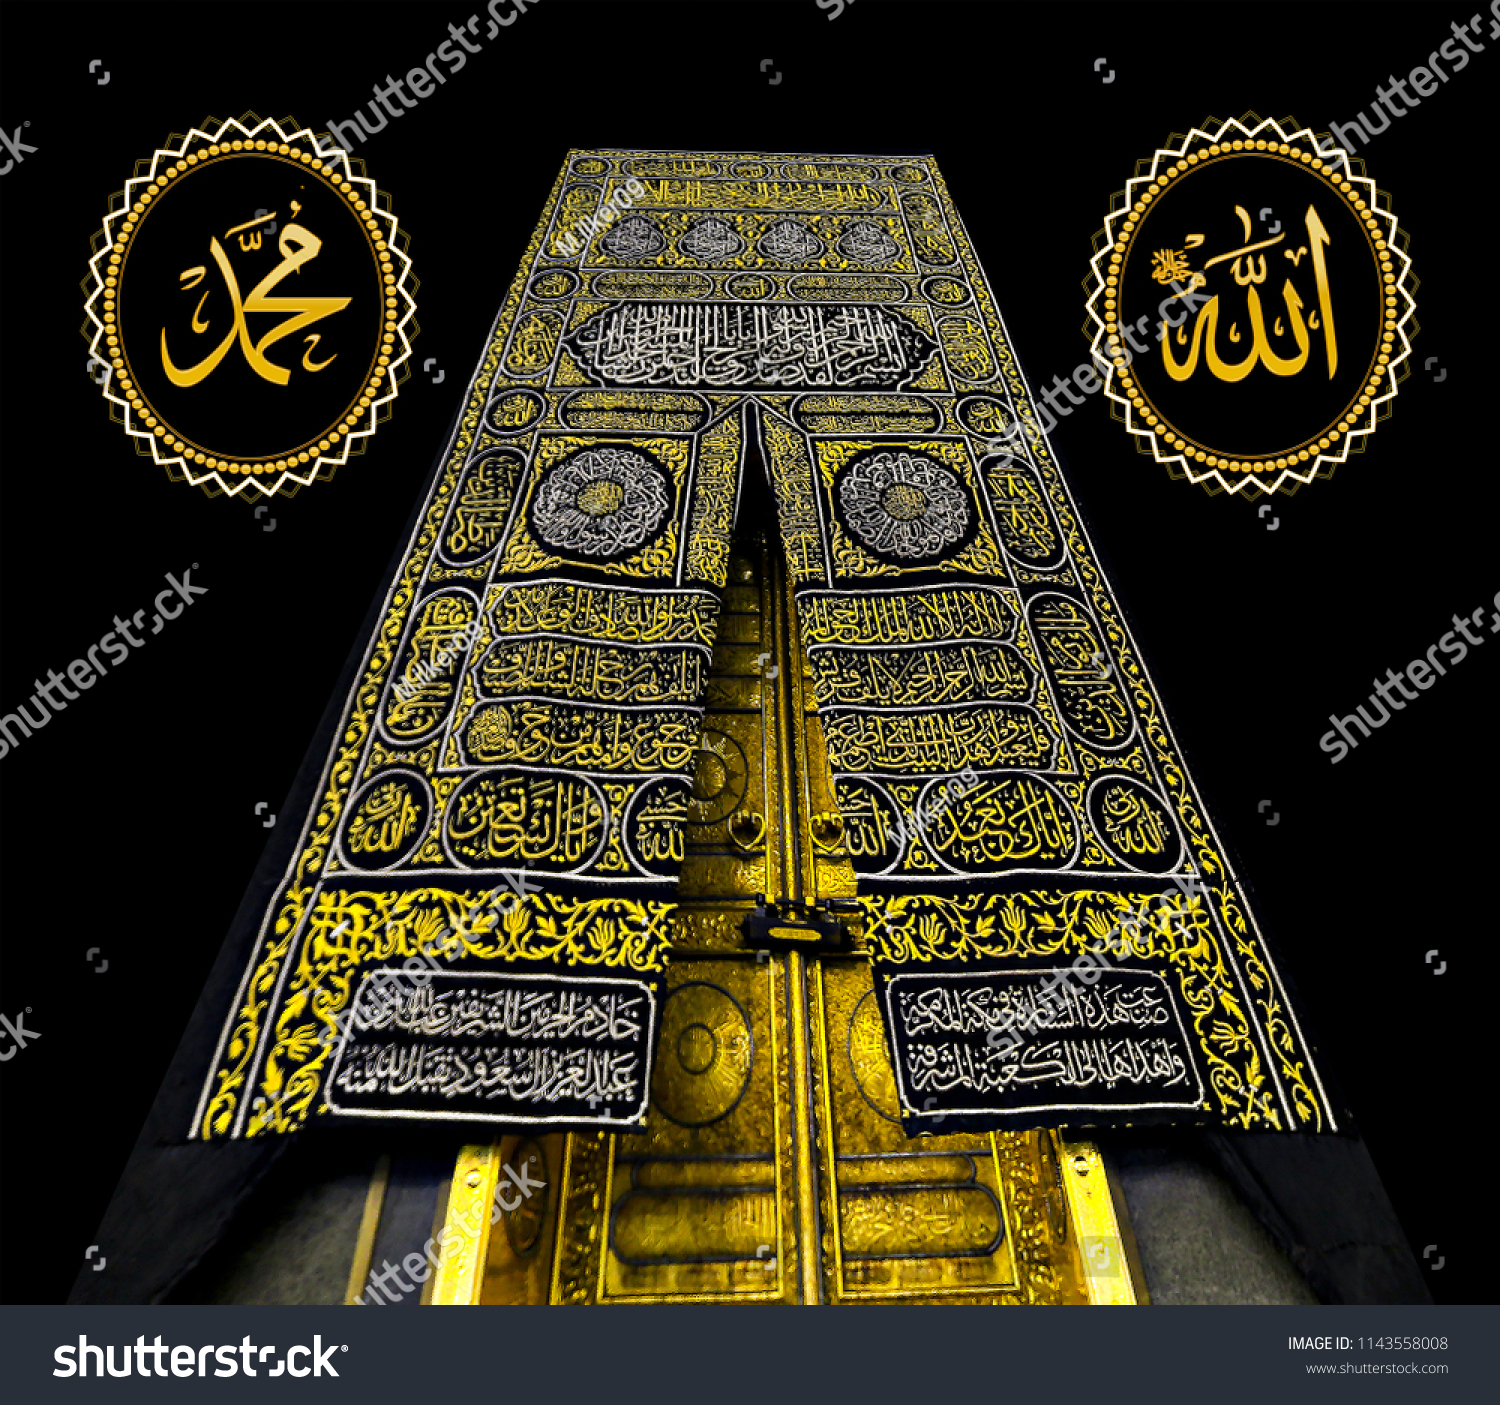 Islamic Wallpapers Collection Muslim Backgrounds 2016